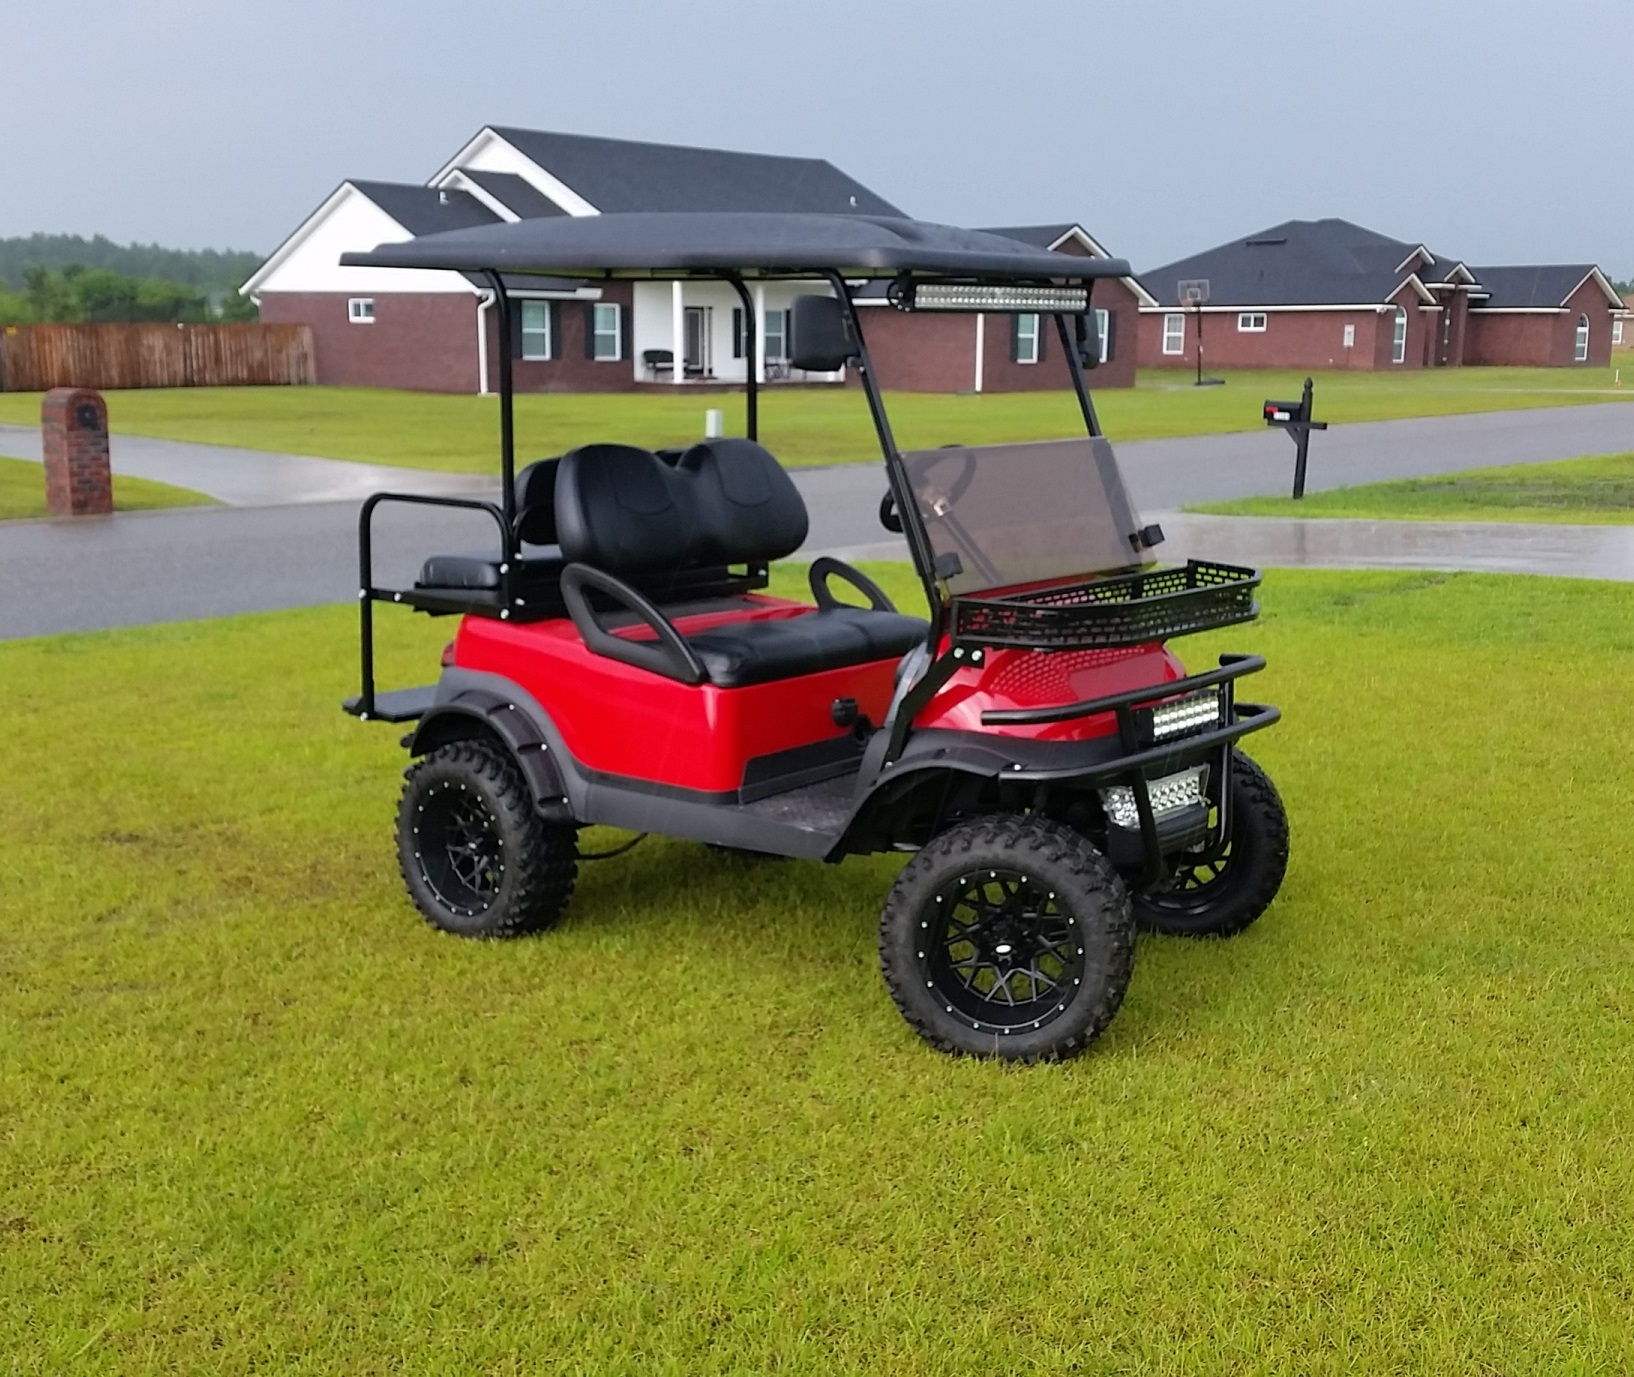 Golf Cart - Neighborhood Setting